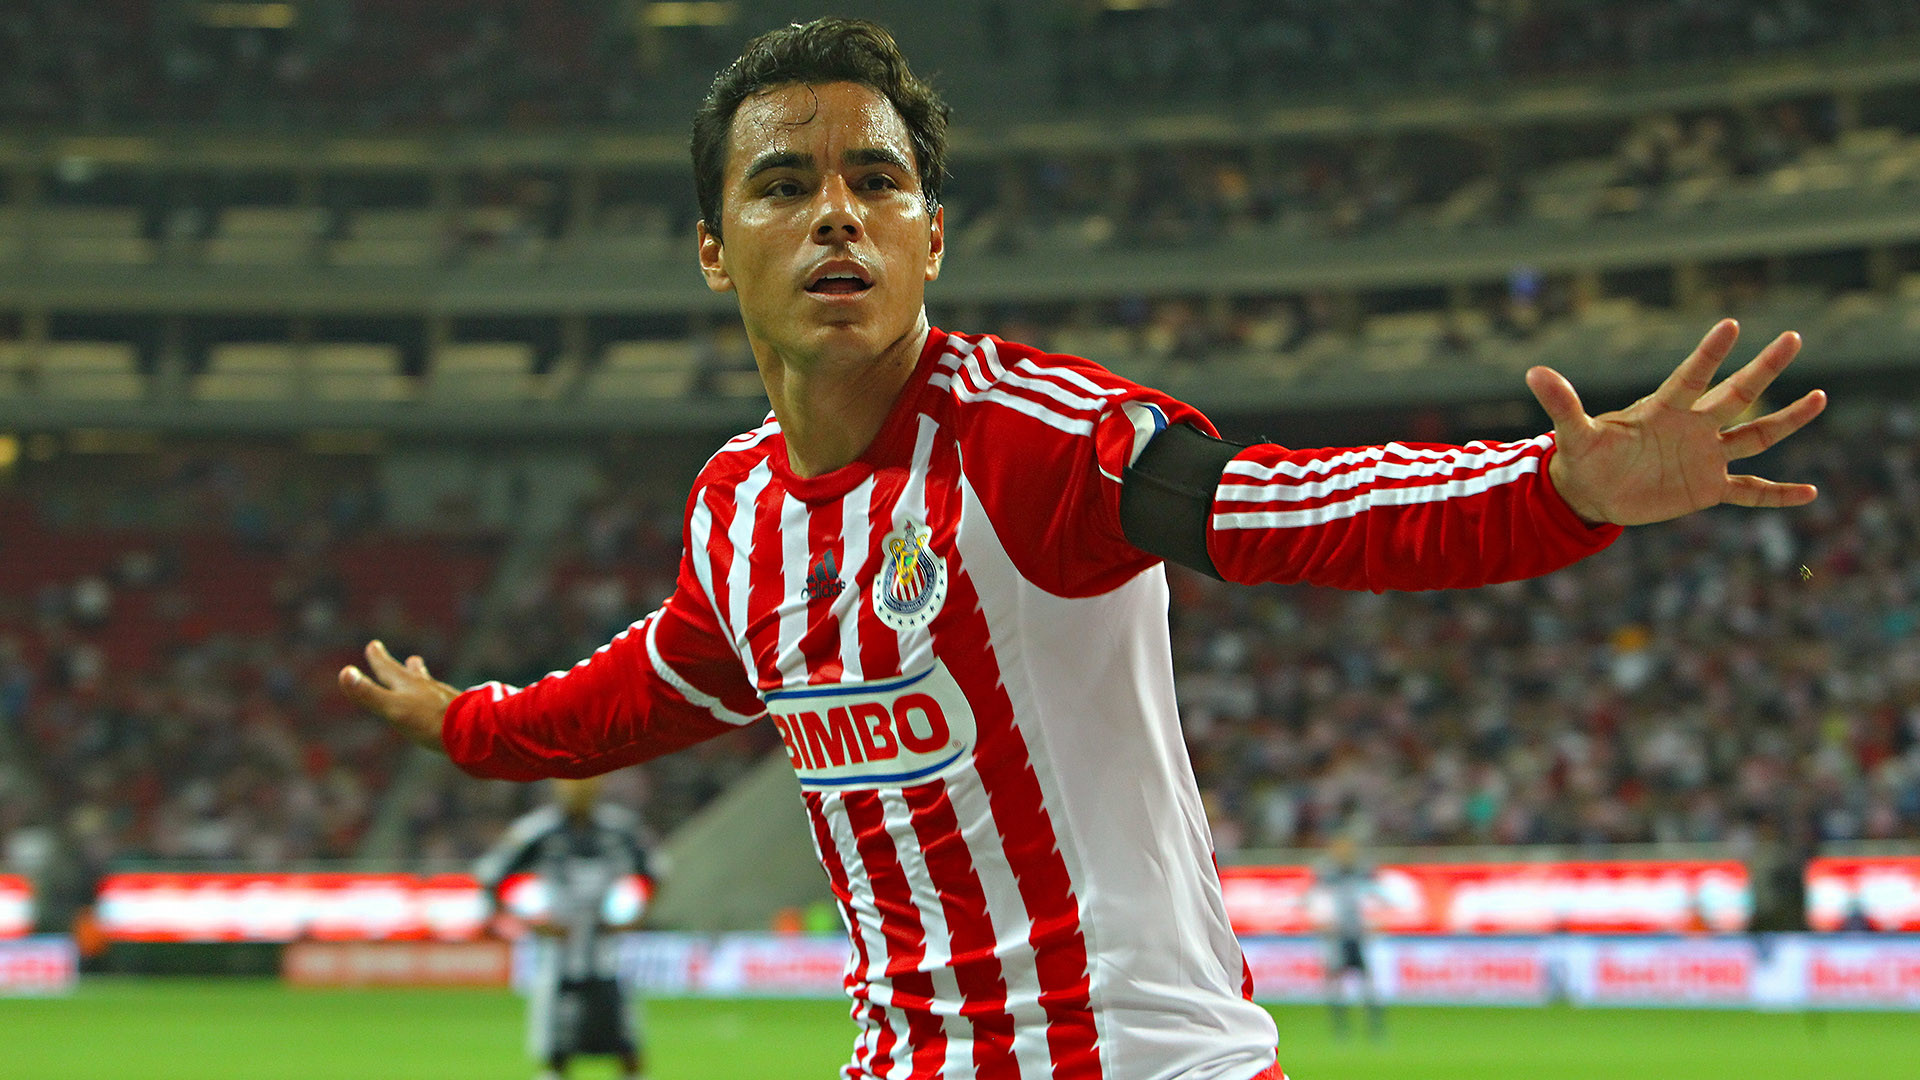 1920x1080 Omar Bravo was back amongst the goals for Chivas this past Sunday